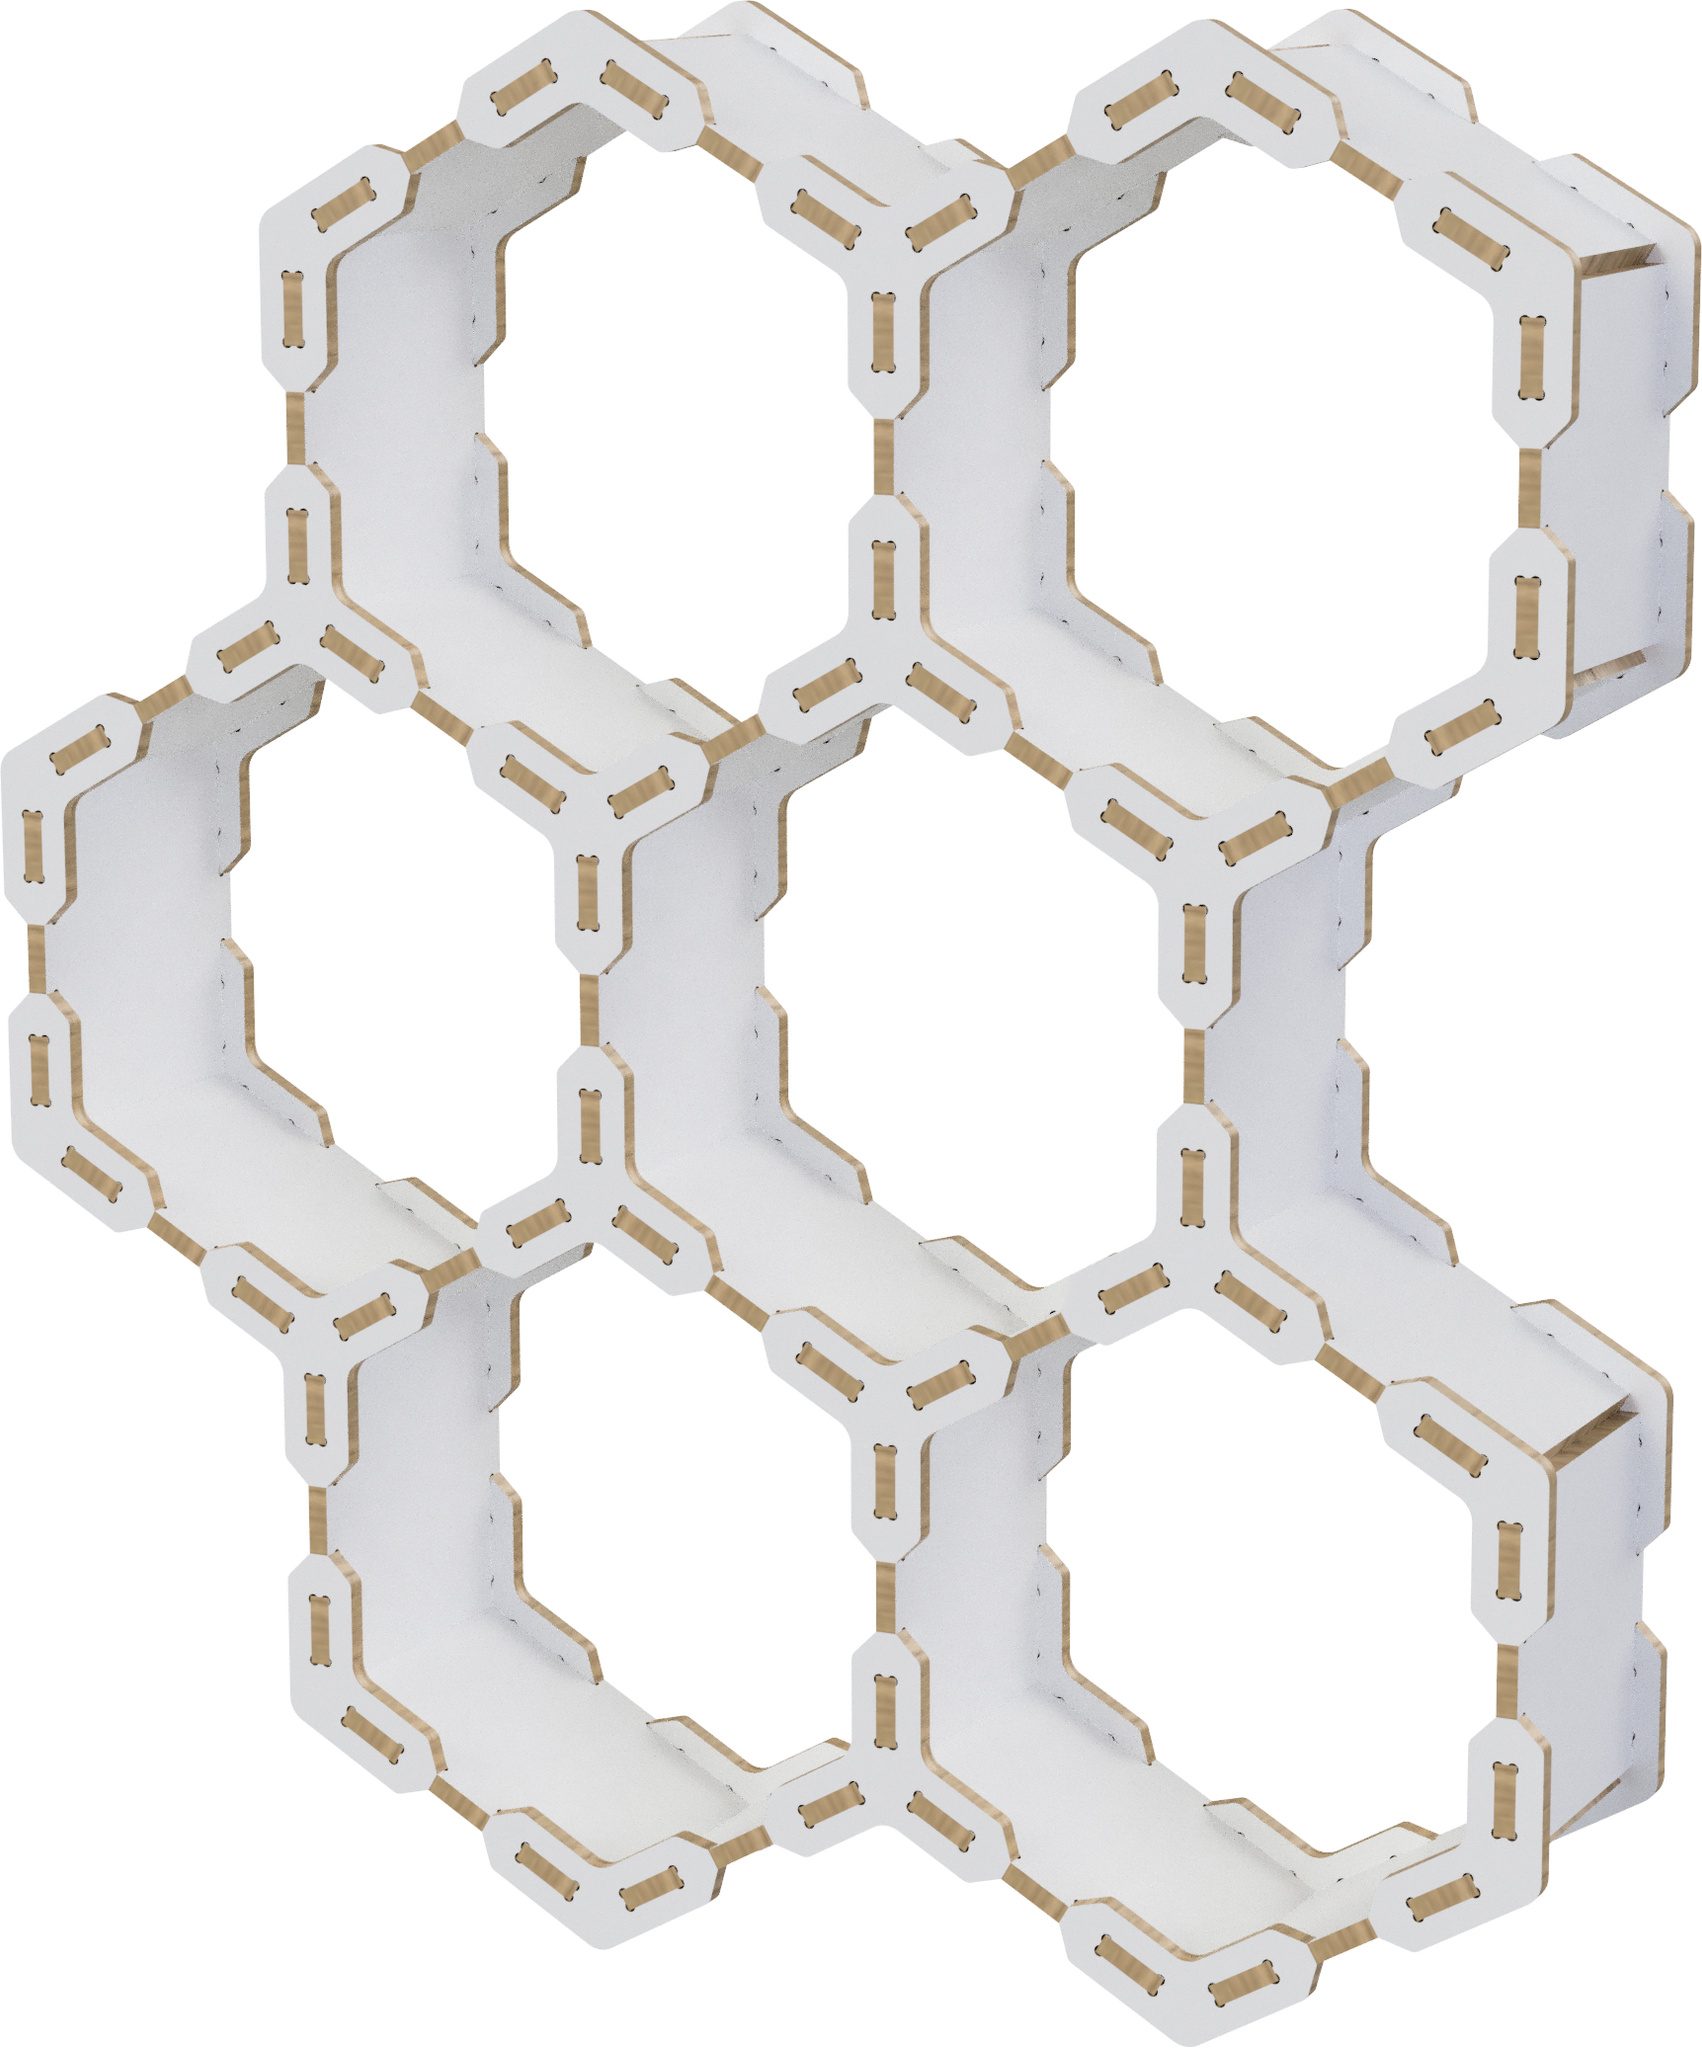 Honeycomb shelf DXF file